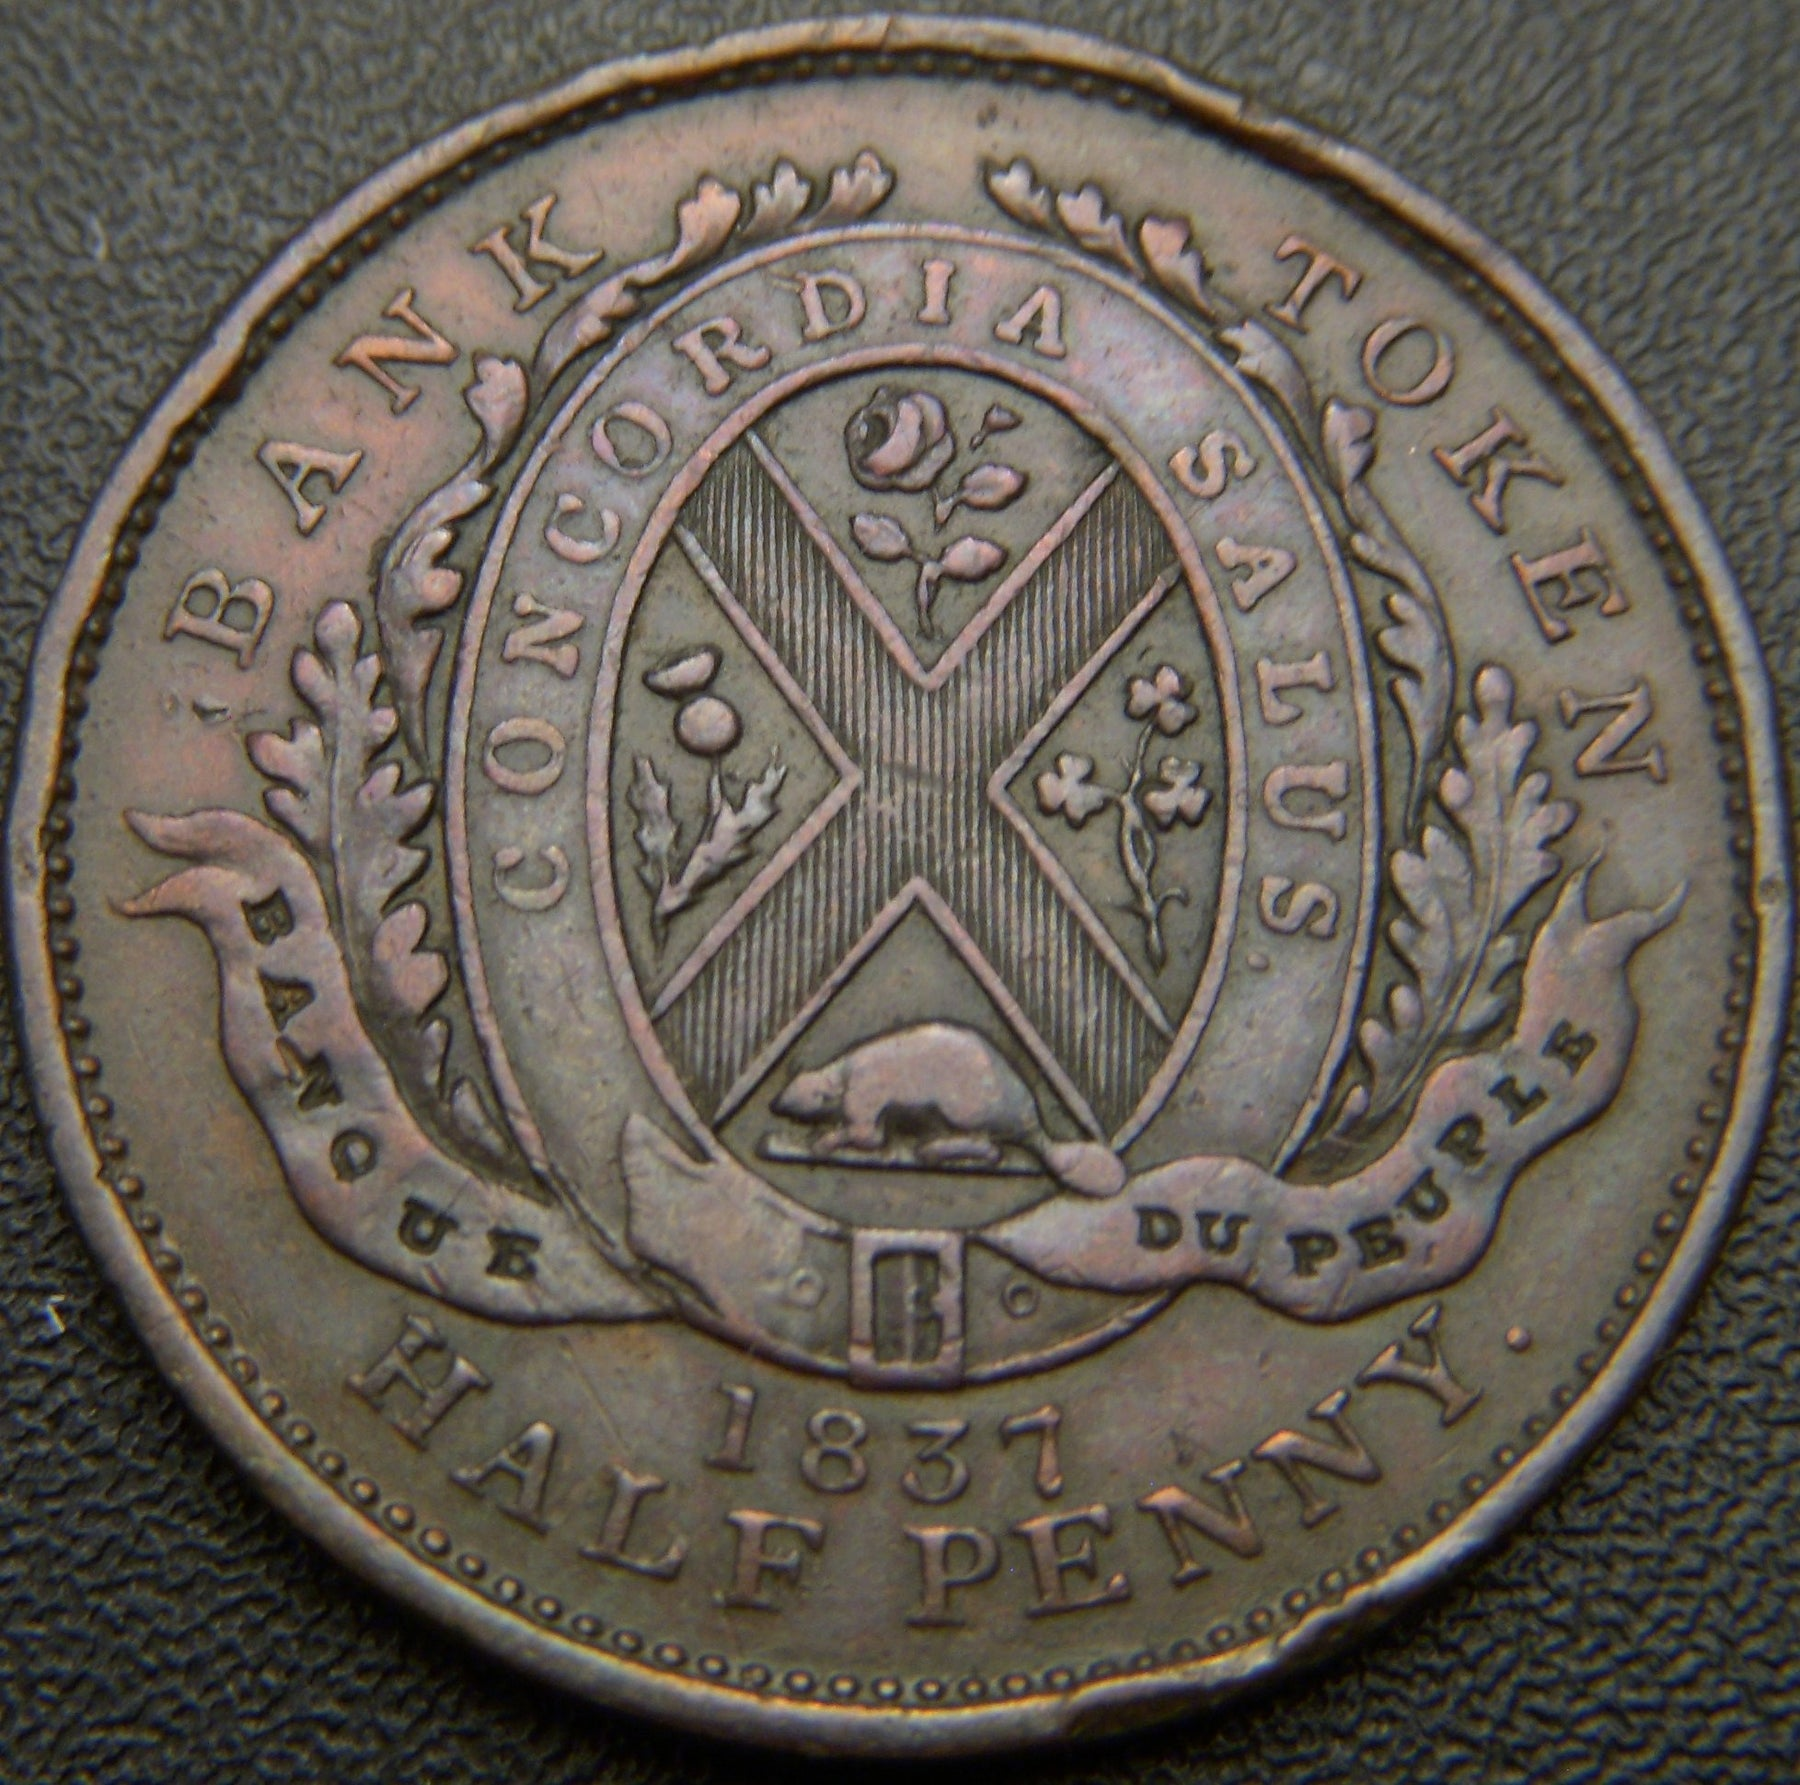 1837 1/2P Du Peuple Bank Token